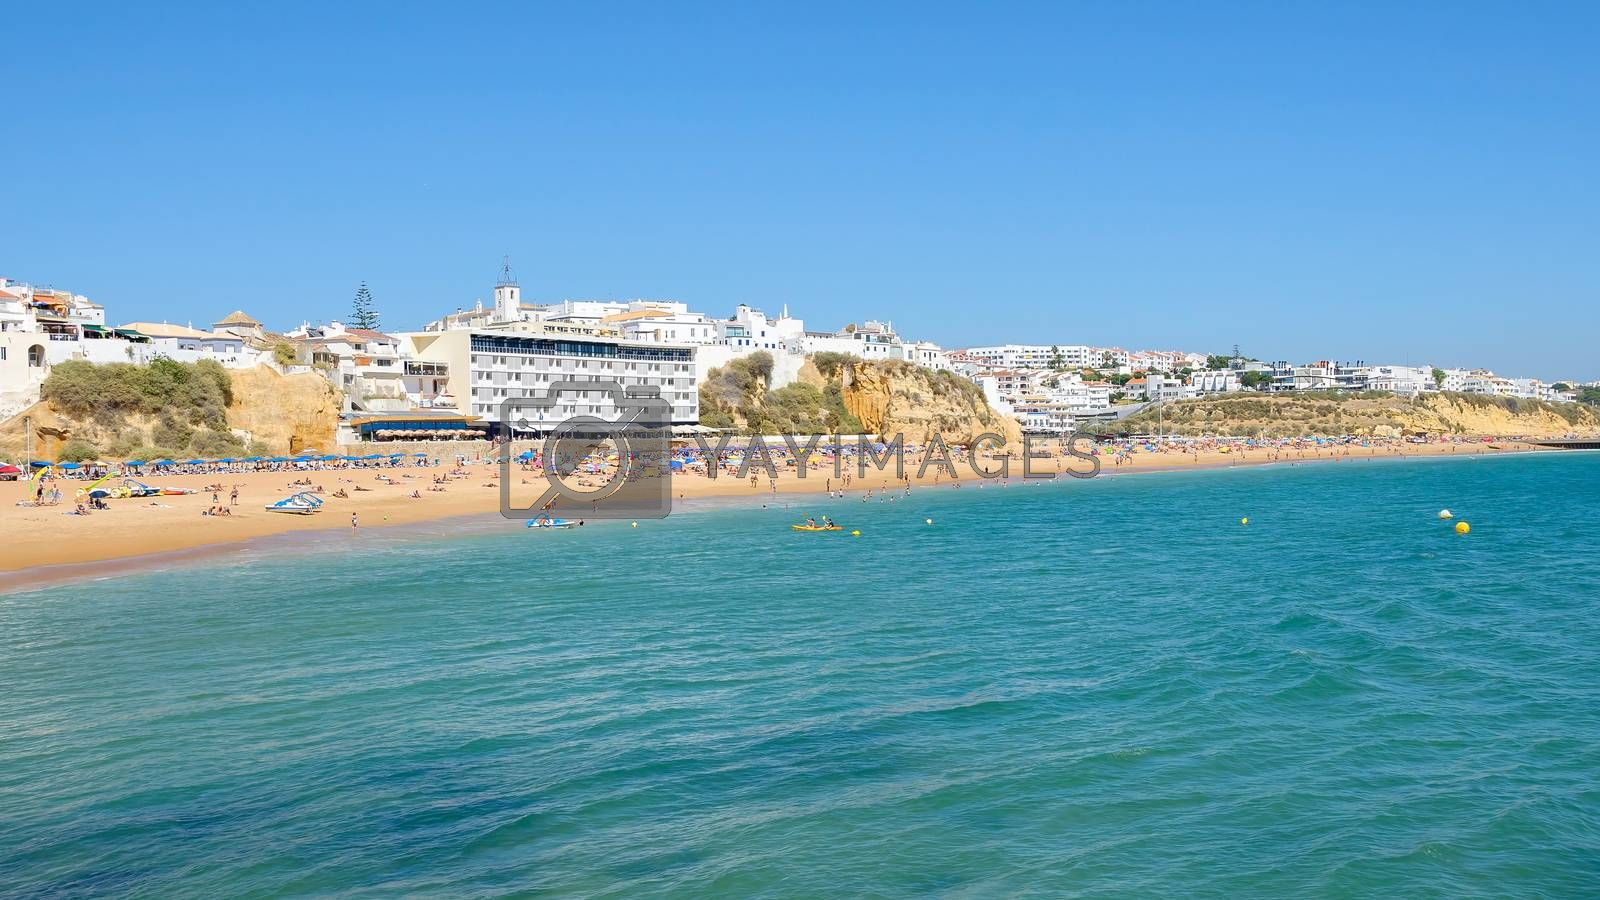 Panoramic view of crowded beach in Albufeira, Algarve, Portugal